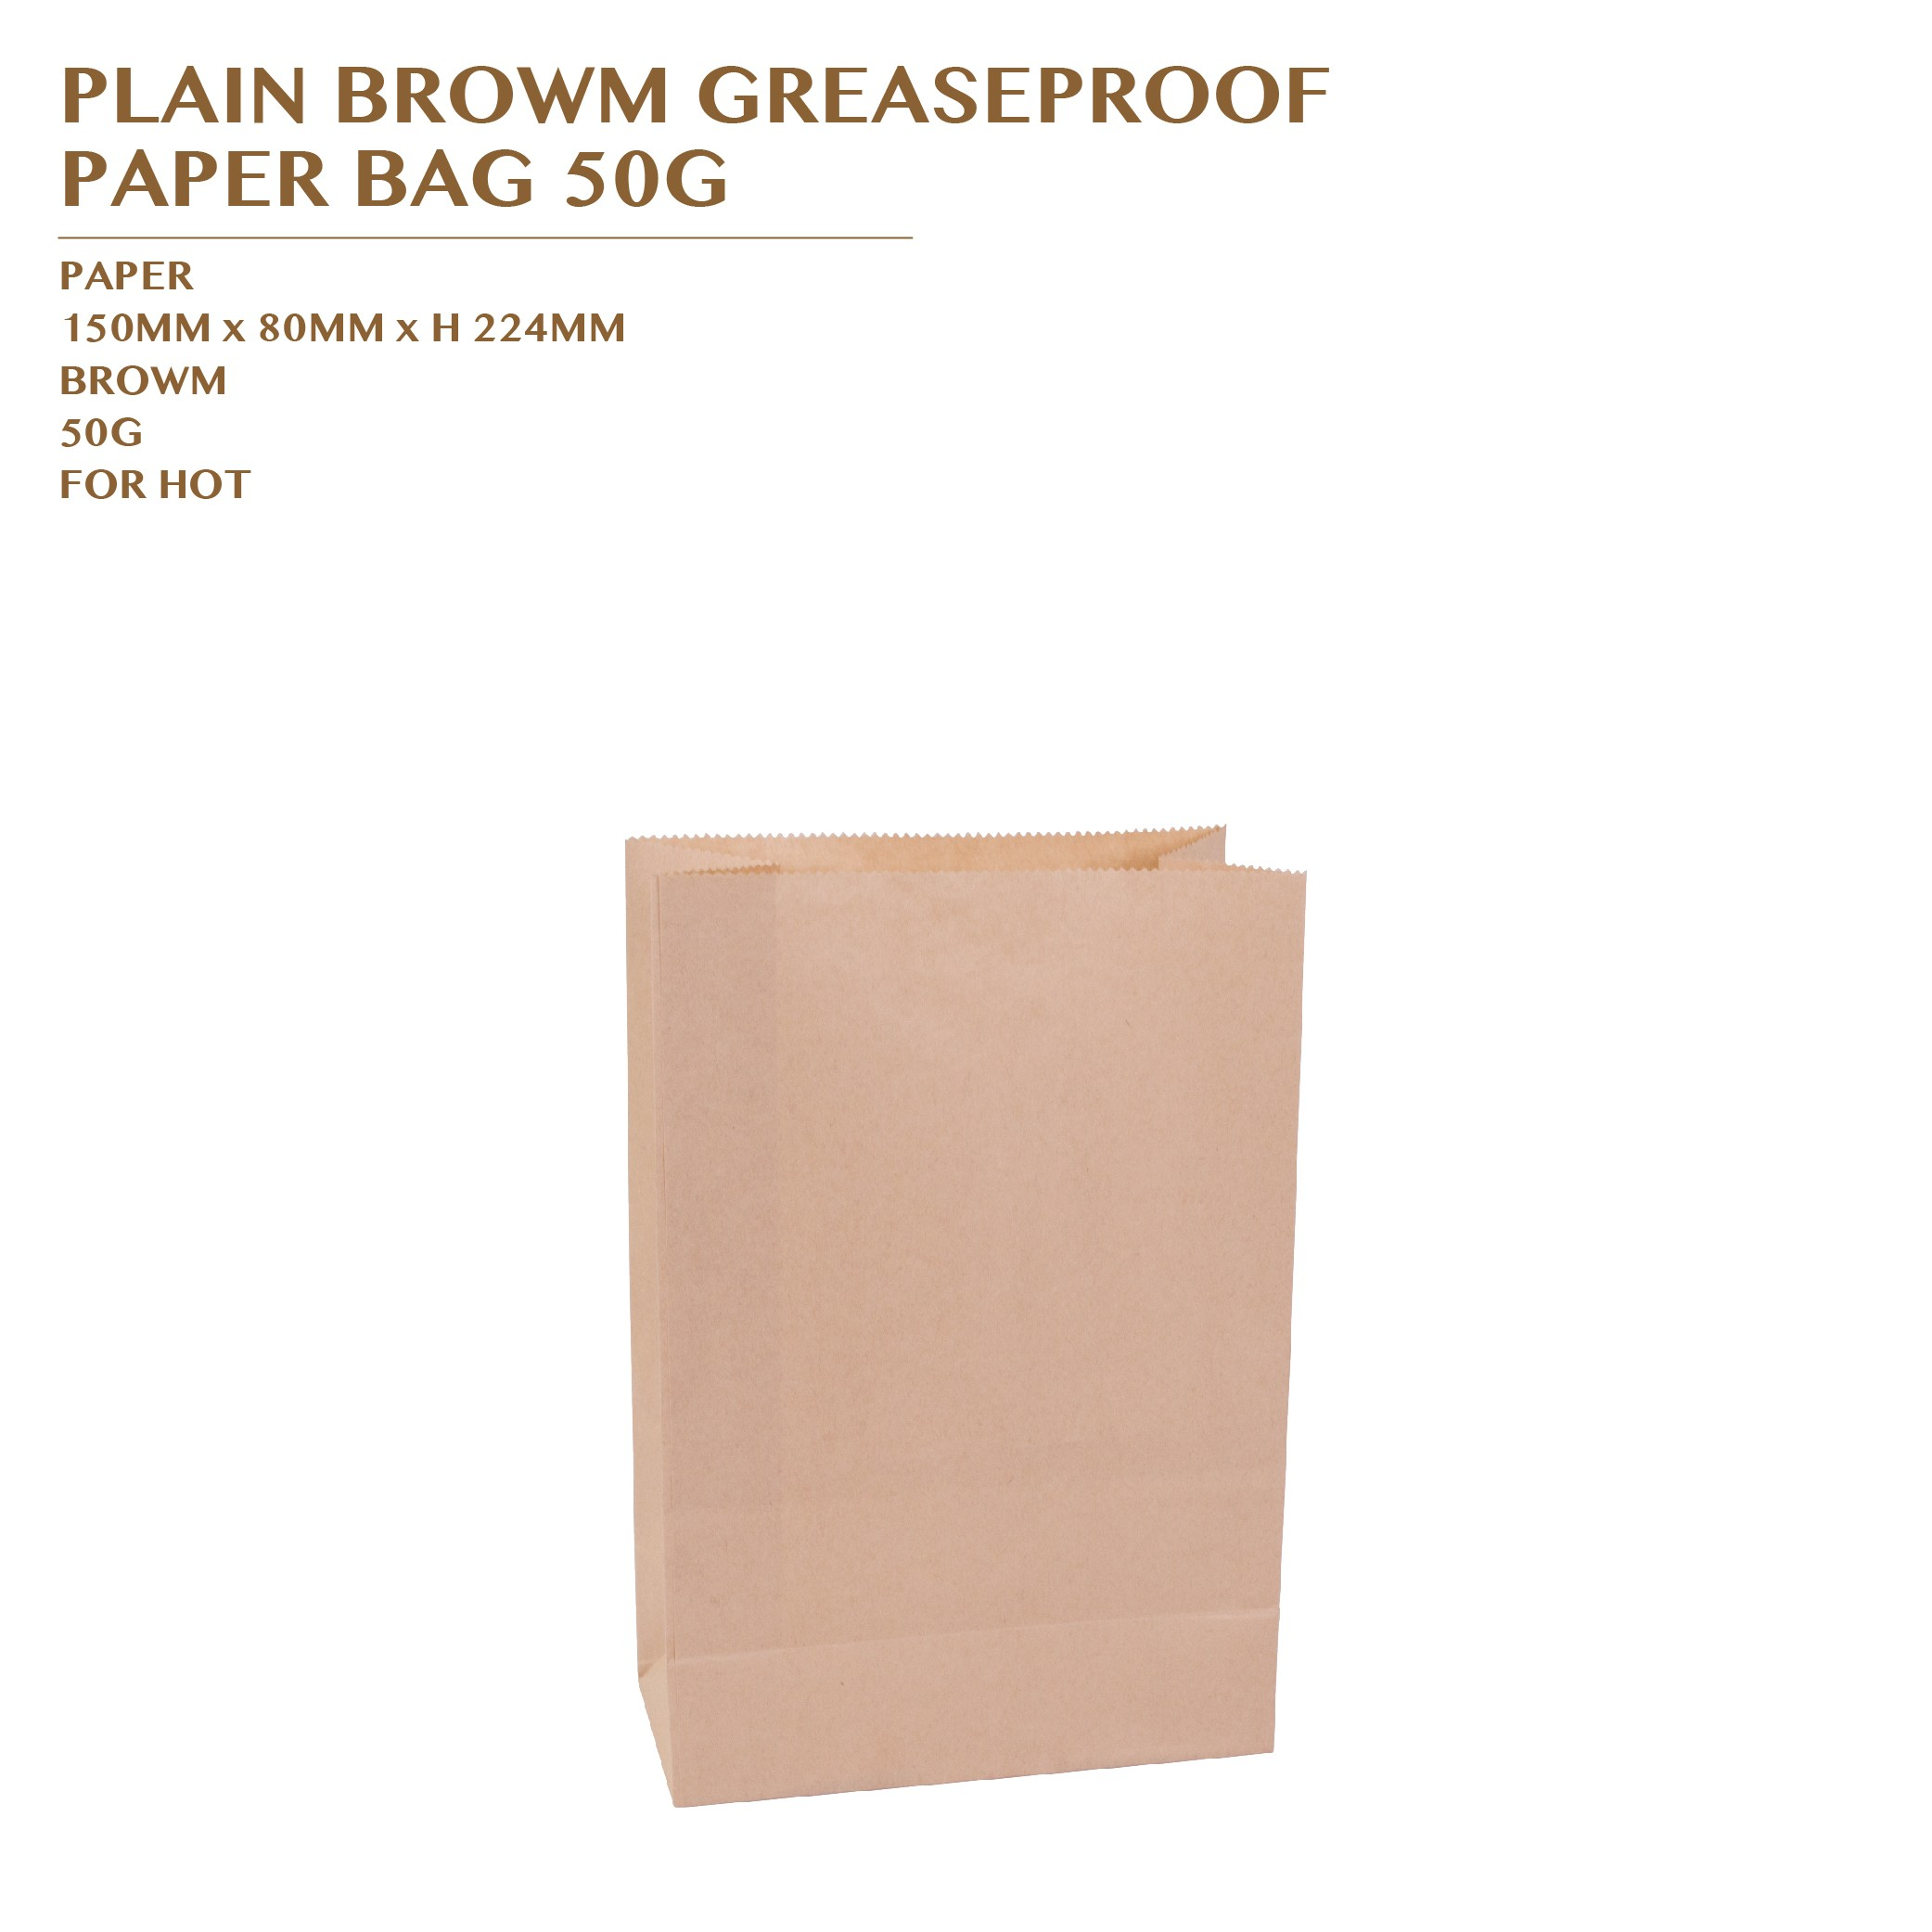 PLAIN BROWN GREASEPROOF  PAPER BAG 50G 50PCS 30PKTS/CTN